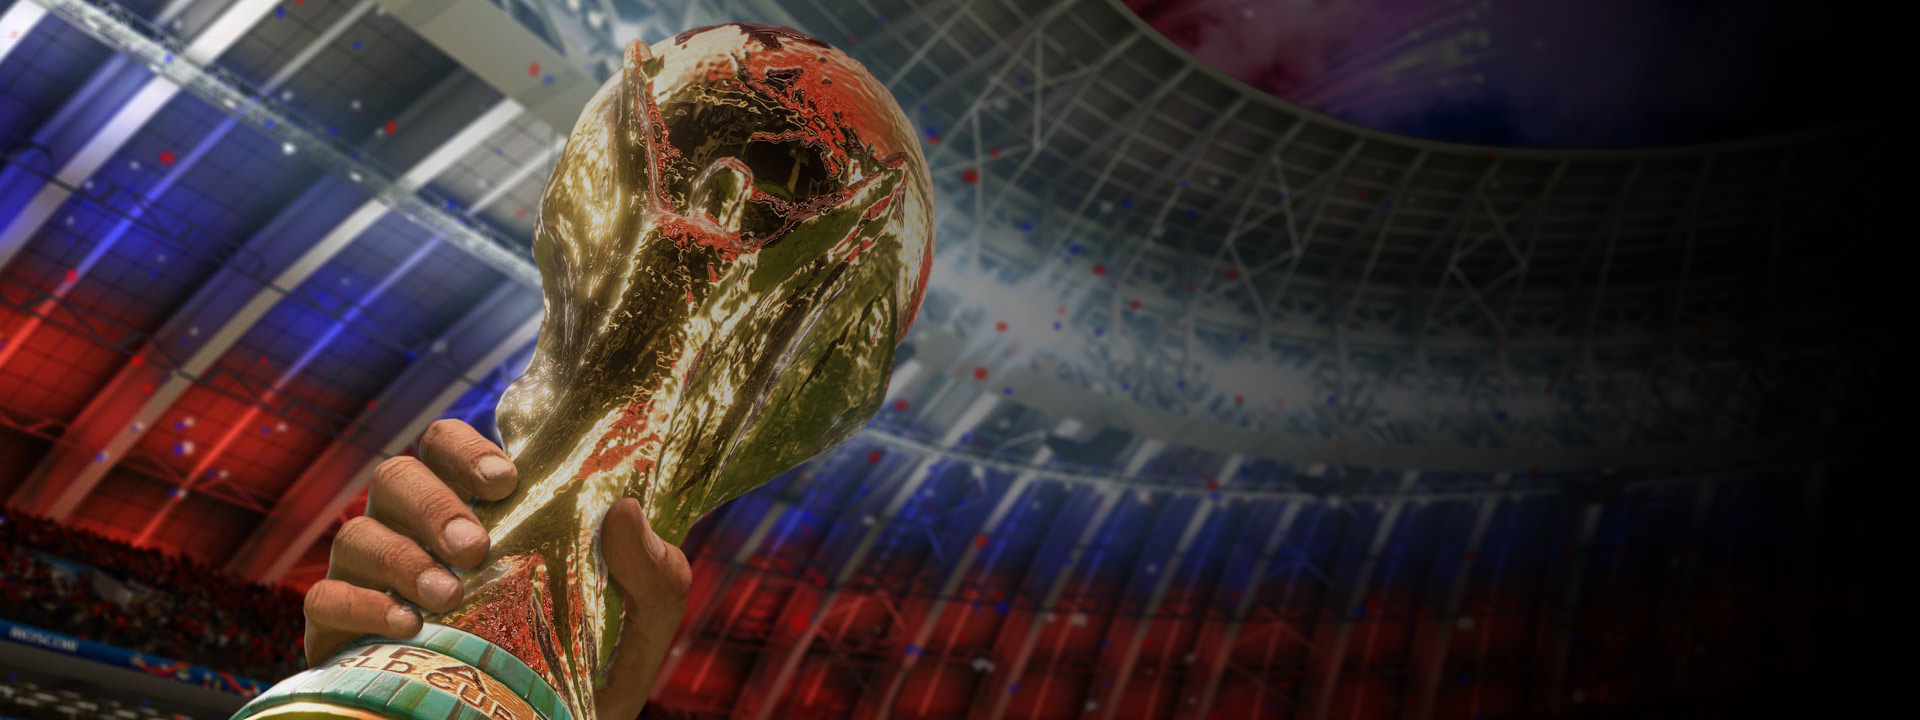 View of a hand holding the 2018 FIFA World Cup trophy up with confetti falling in stadium background